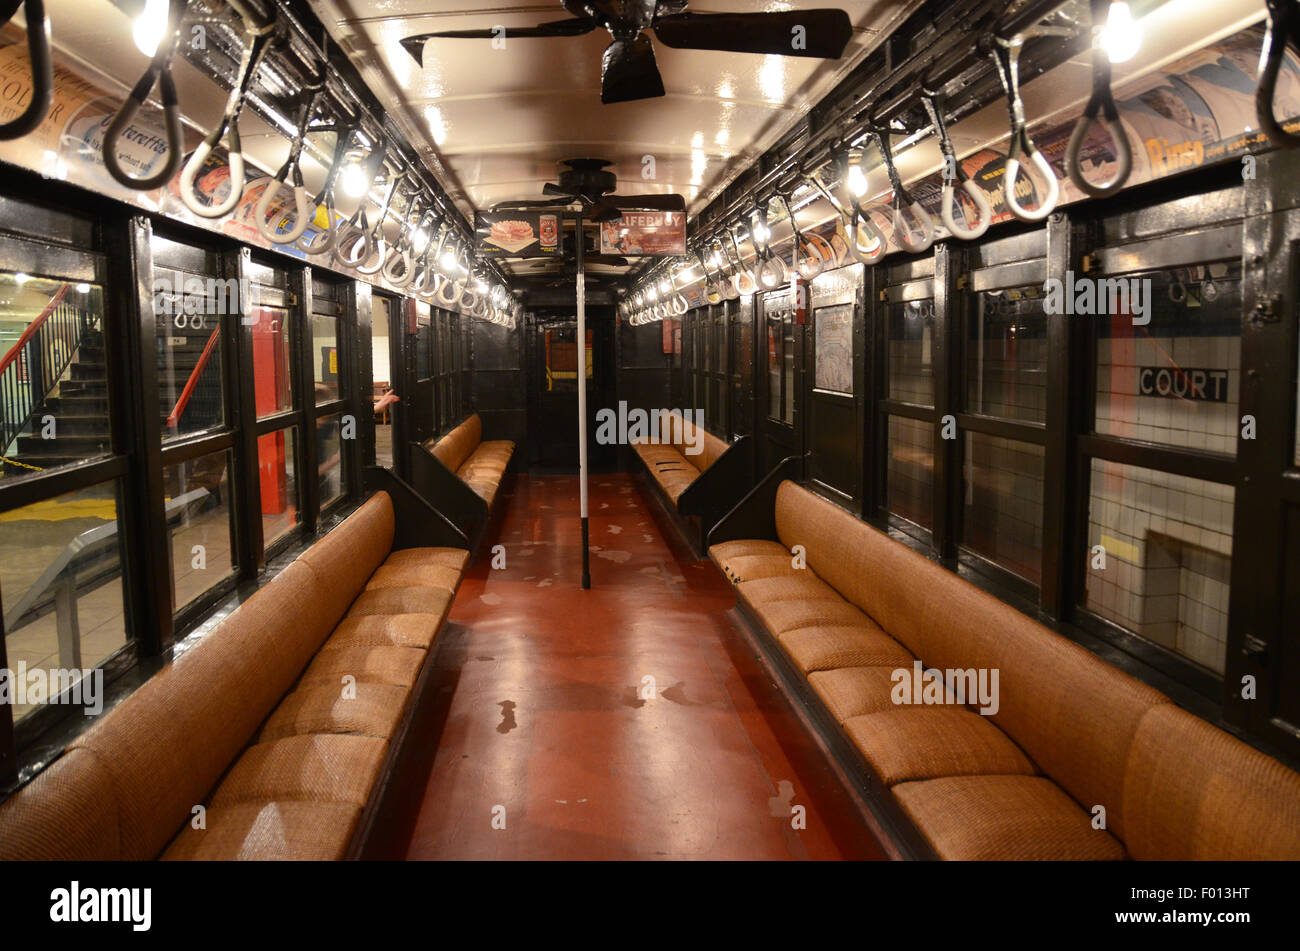 New York Transit Museum 1904 carriage subway vintage subway signs adverts rattan benches green livery exterior special - Stock Image